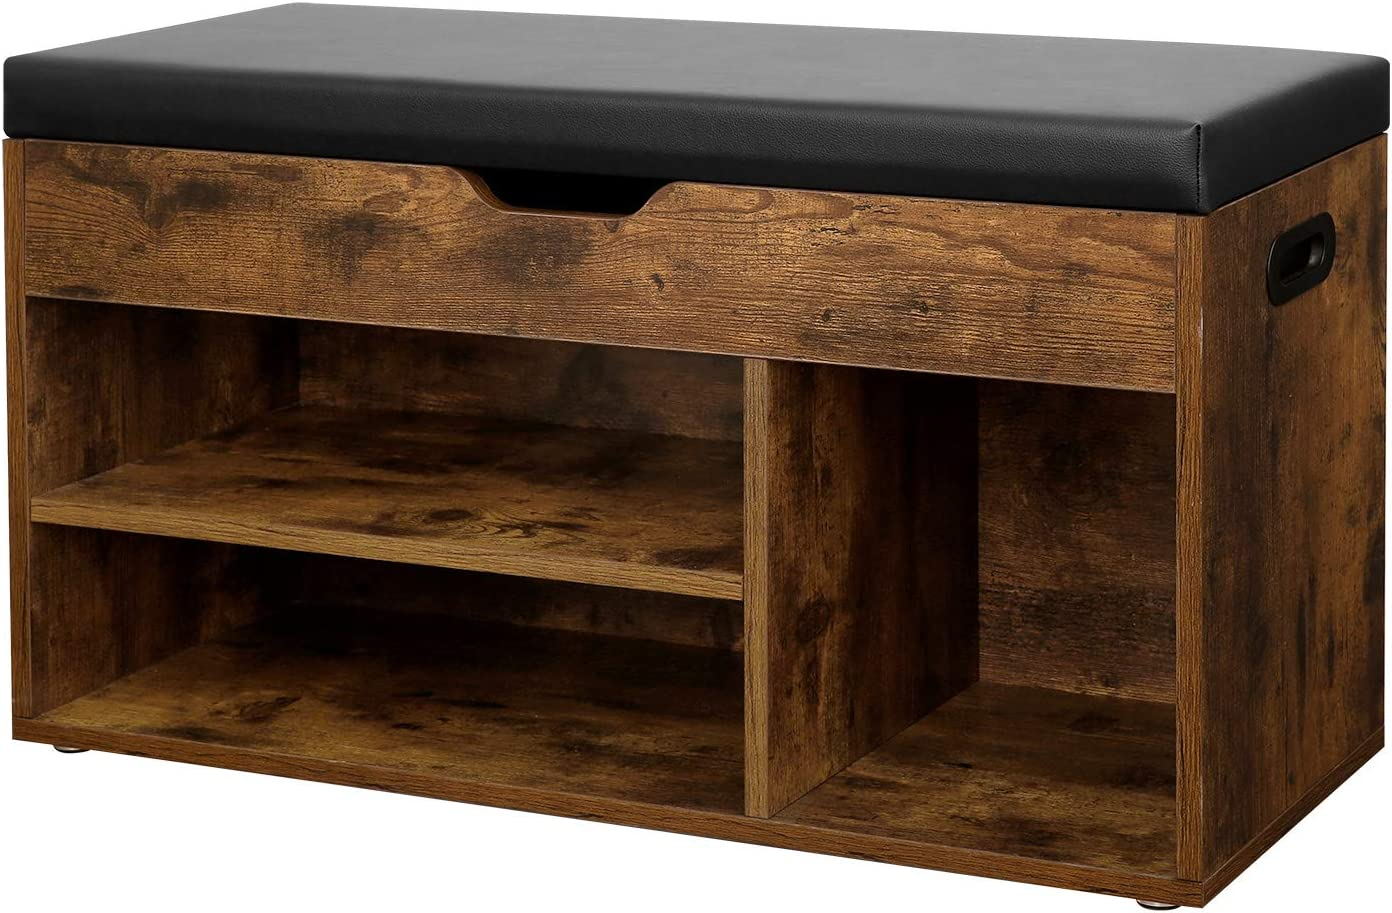 VASAGLE Shoe Bench with Cushion, Storage Bench with Padded Seat, 3 Compartments, Hidden Storage, Shelves, Living Room Lounge Hallway Bedroom, Load Capacity 150 kg, Rustic Brown LHS30BX